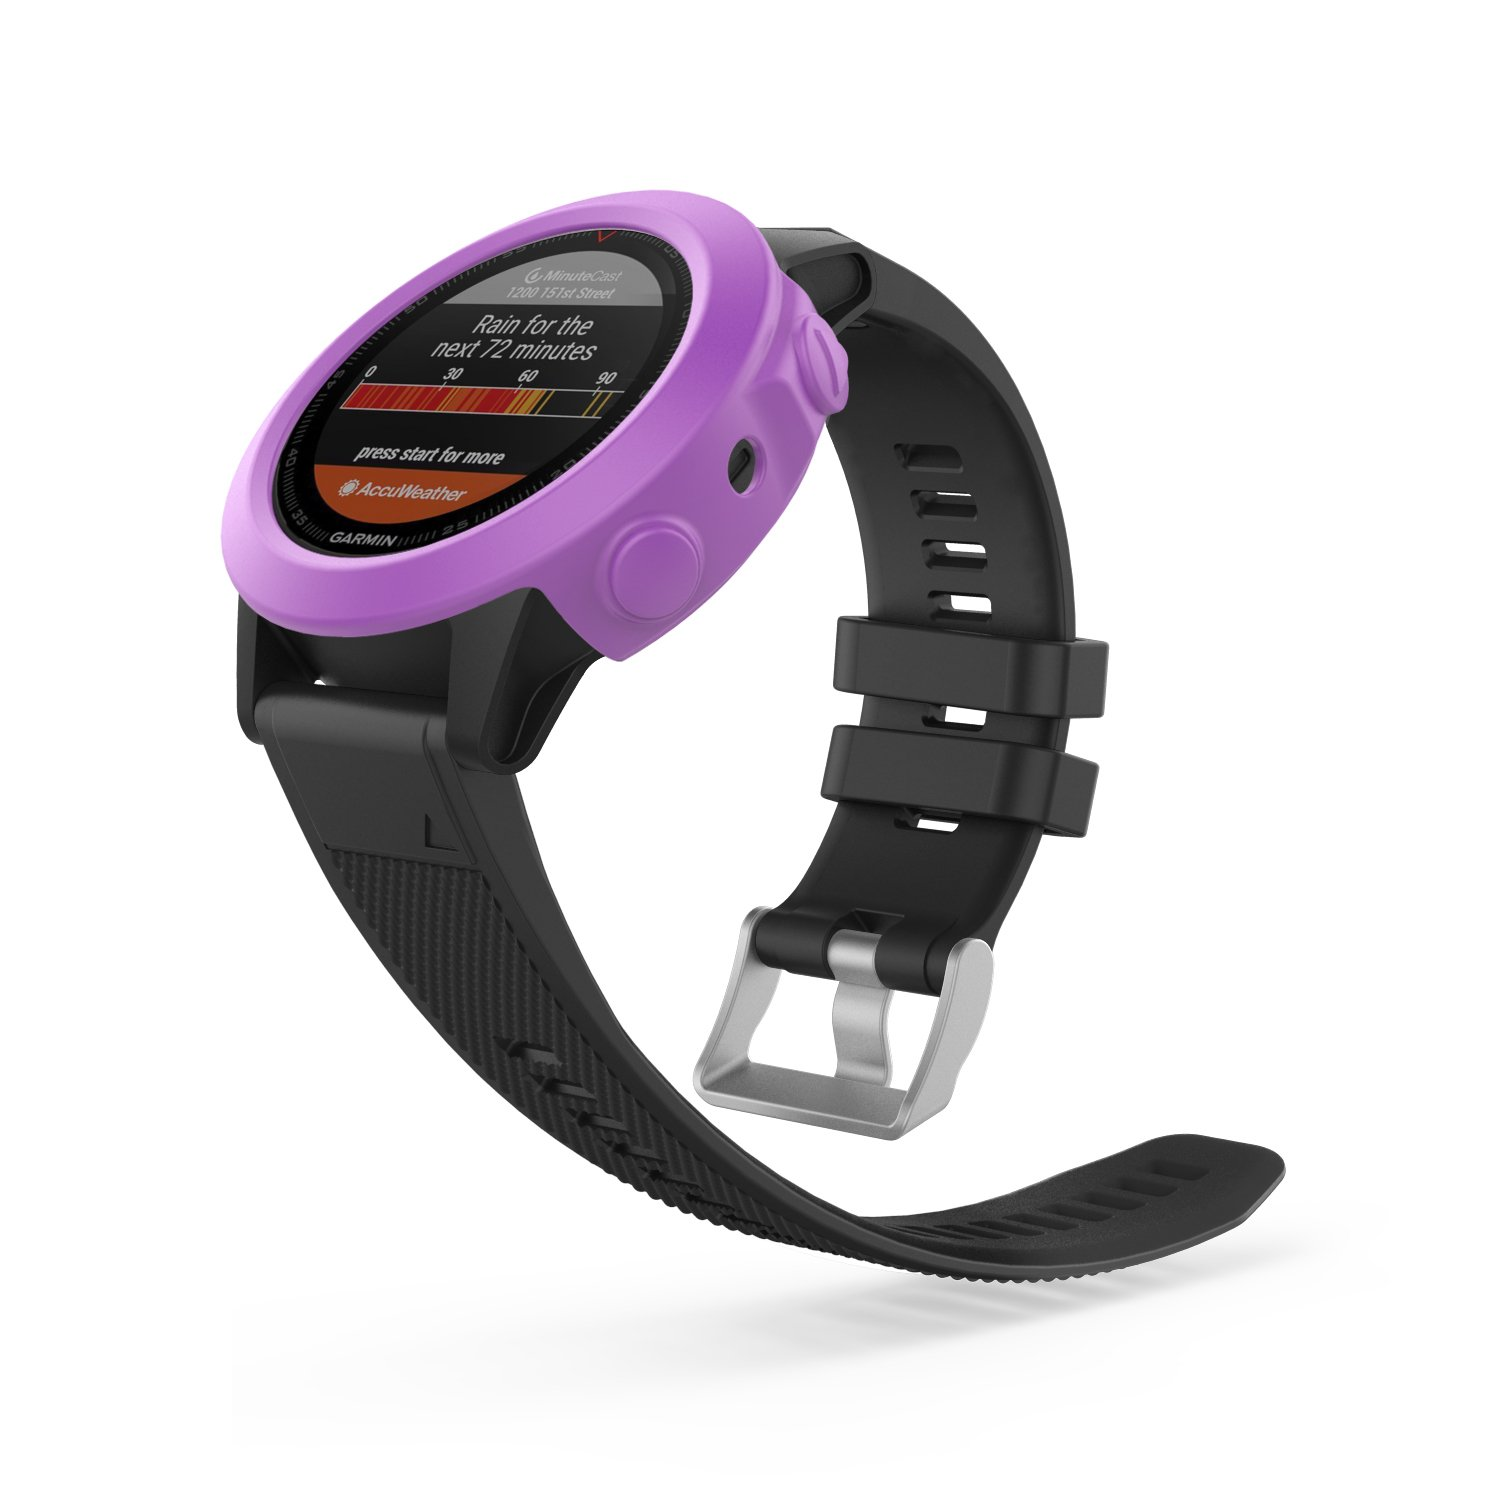 Amazon.com: MoKo Case for Garmin Fenix 5/5 Plus Watch, [6 PACK] Soft Silicone Full Body Protective Cover Shock-proof Case Protector Accessories for Garmin ...